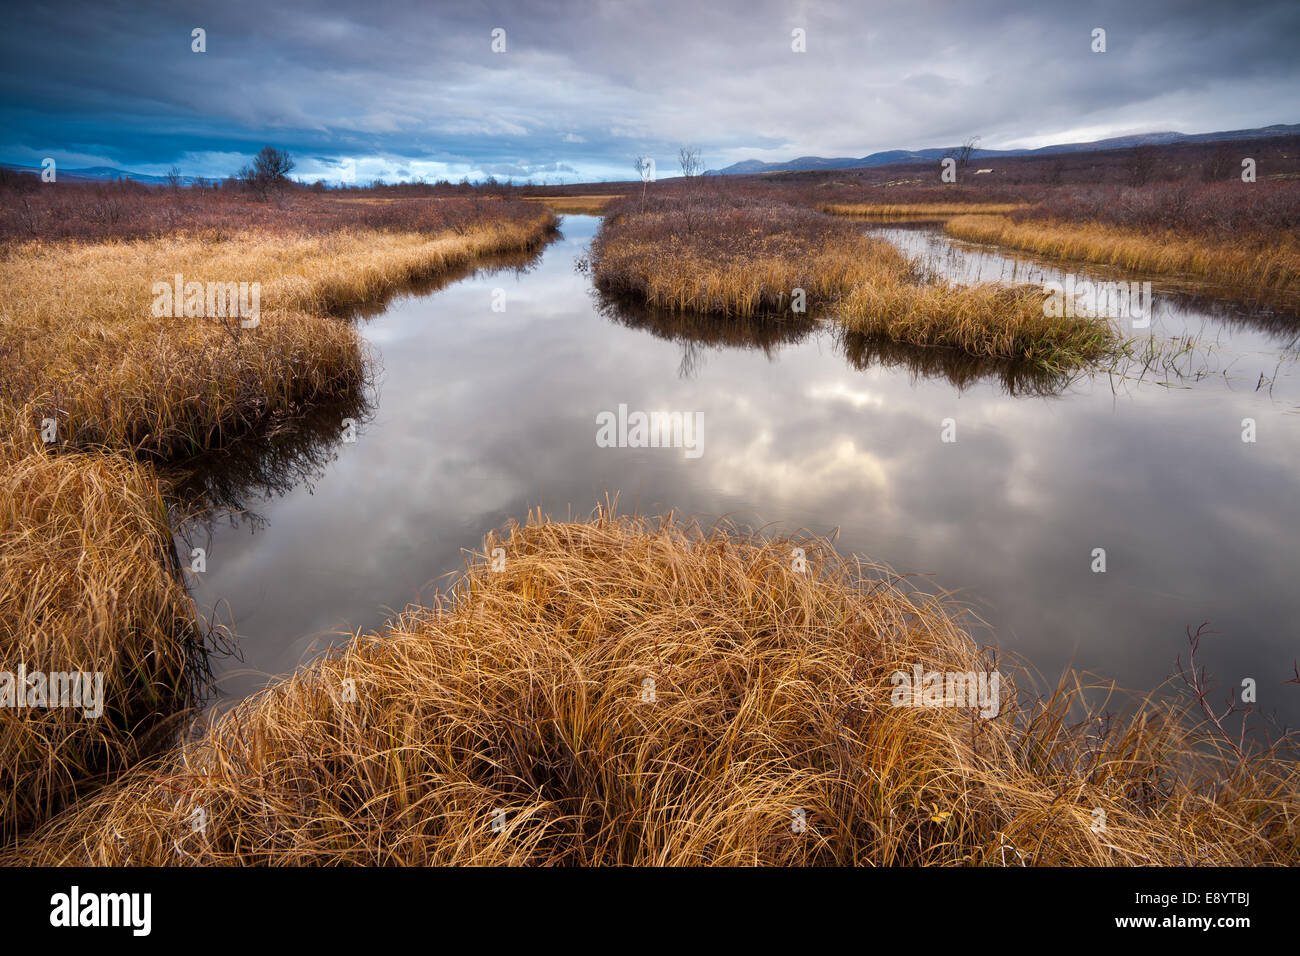 Autumn at Fokstumyra nature reserve in Dovre kommune, Oppland fylke, Norway. - Stock Image